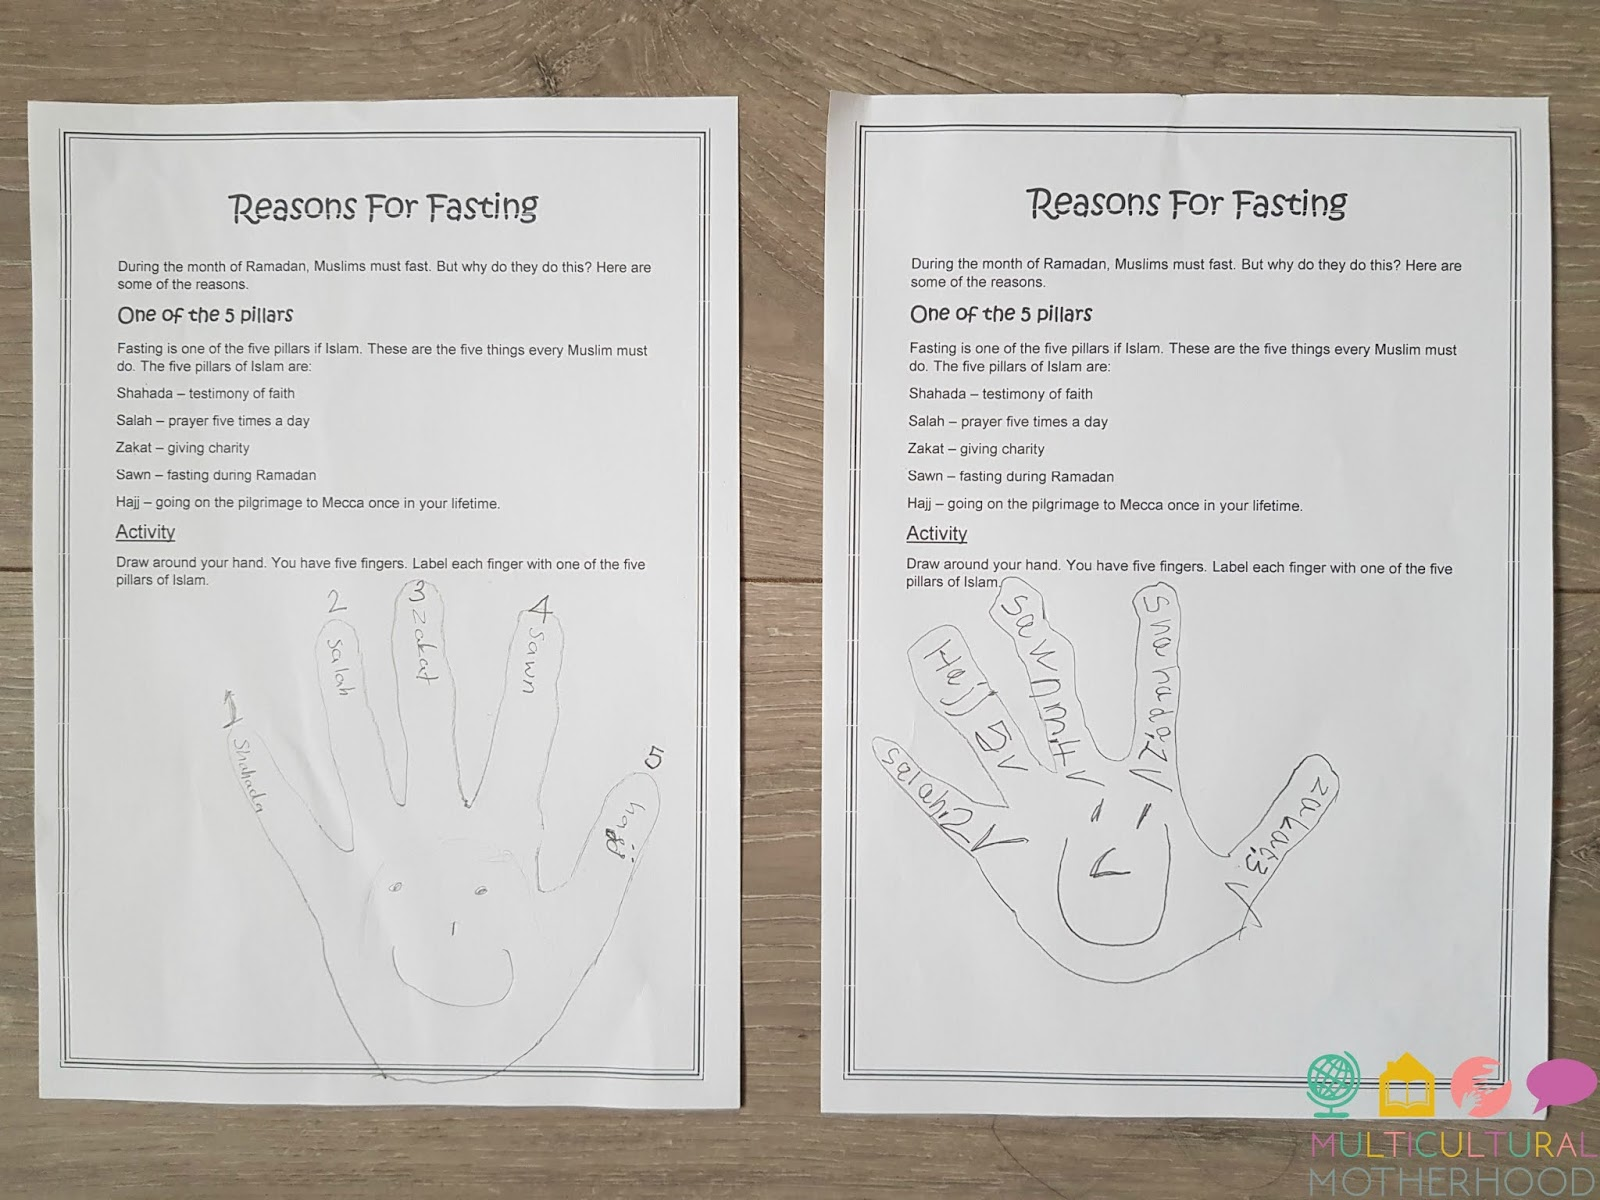 medium resolution of Reasons For Fasting in Ramadan - Activities For Kids + Free Printables!    Multicultural Motherhood